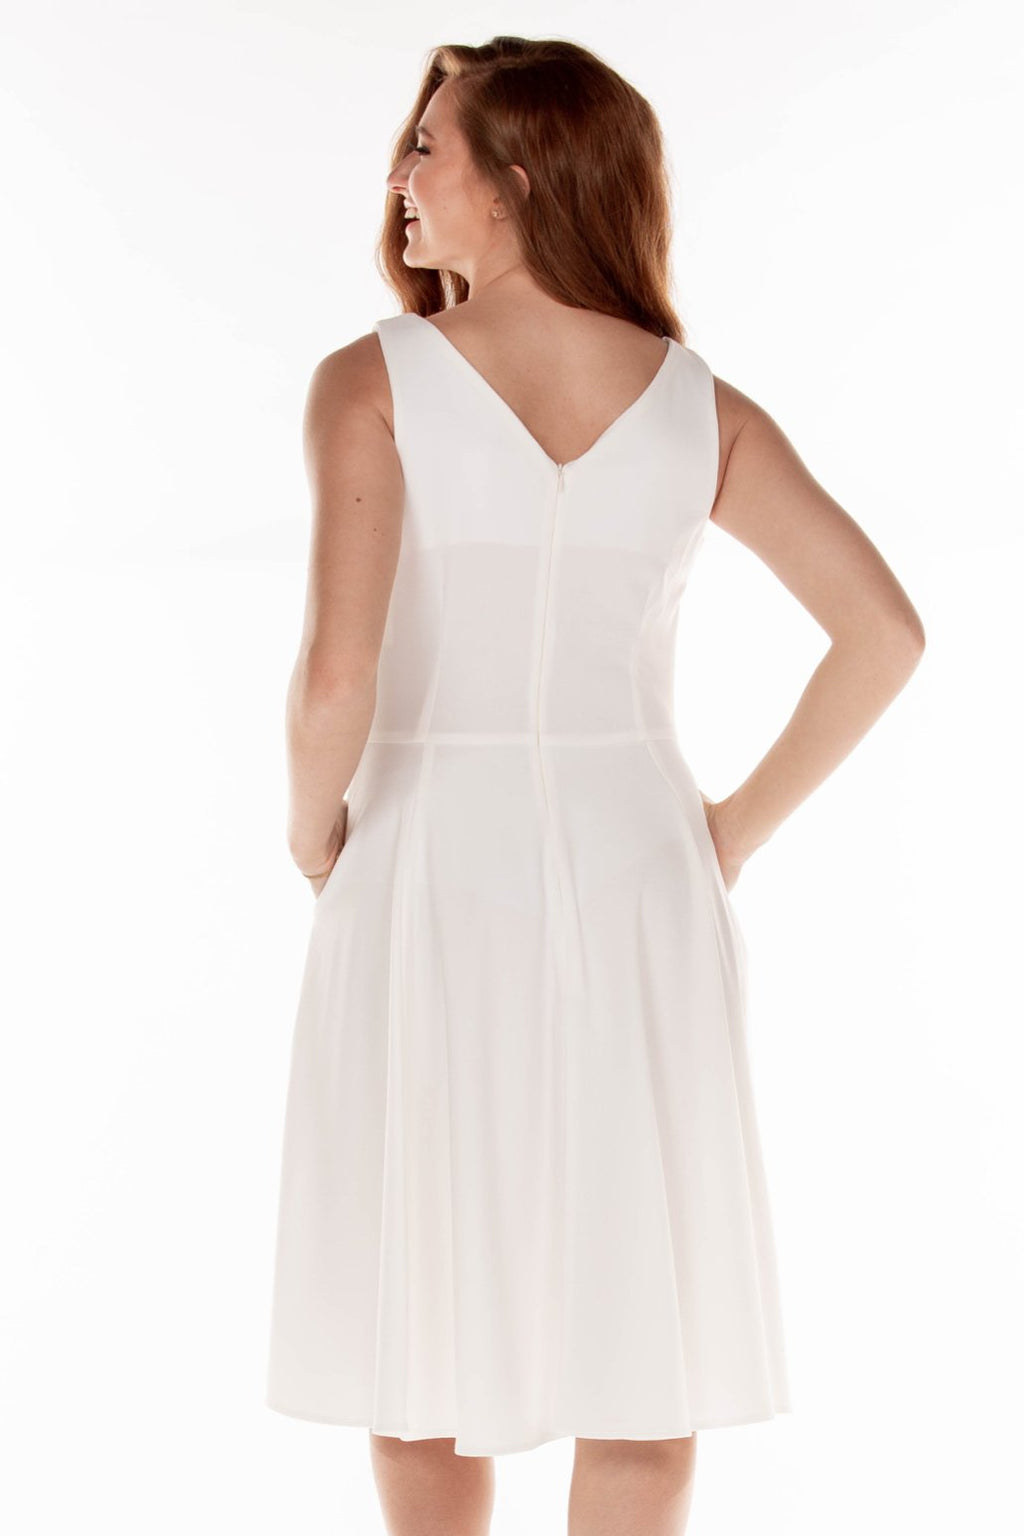 This ERE 3915 flowy cocktail dress in white features a V-neckline on the bodice and pockets.